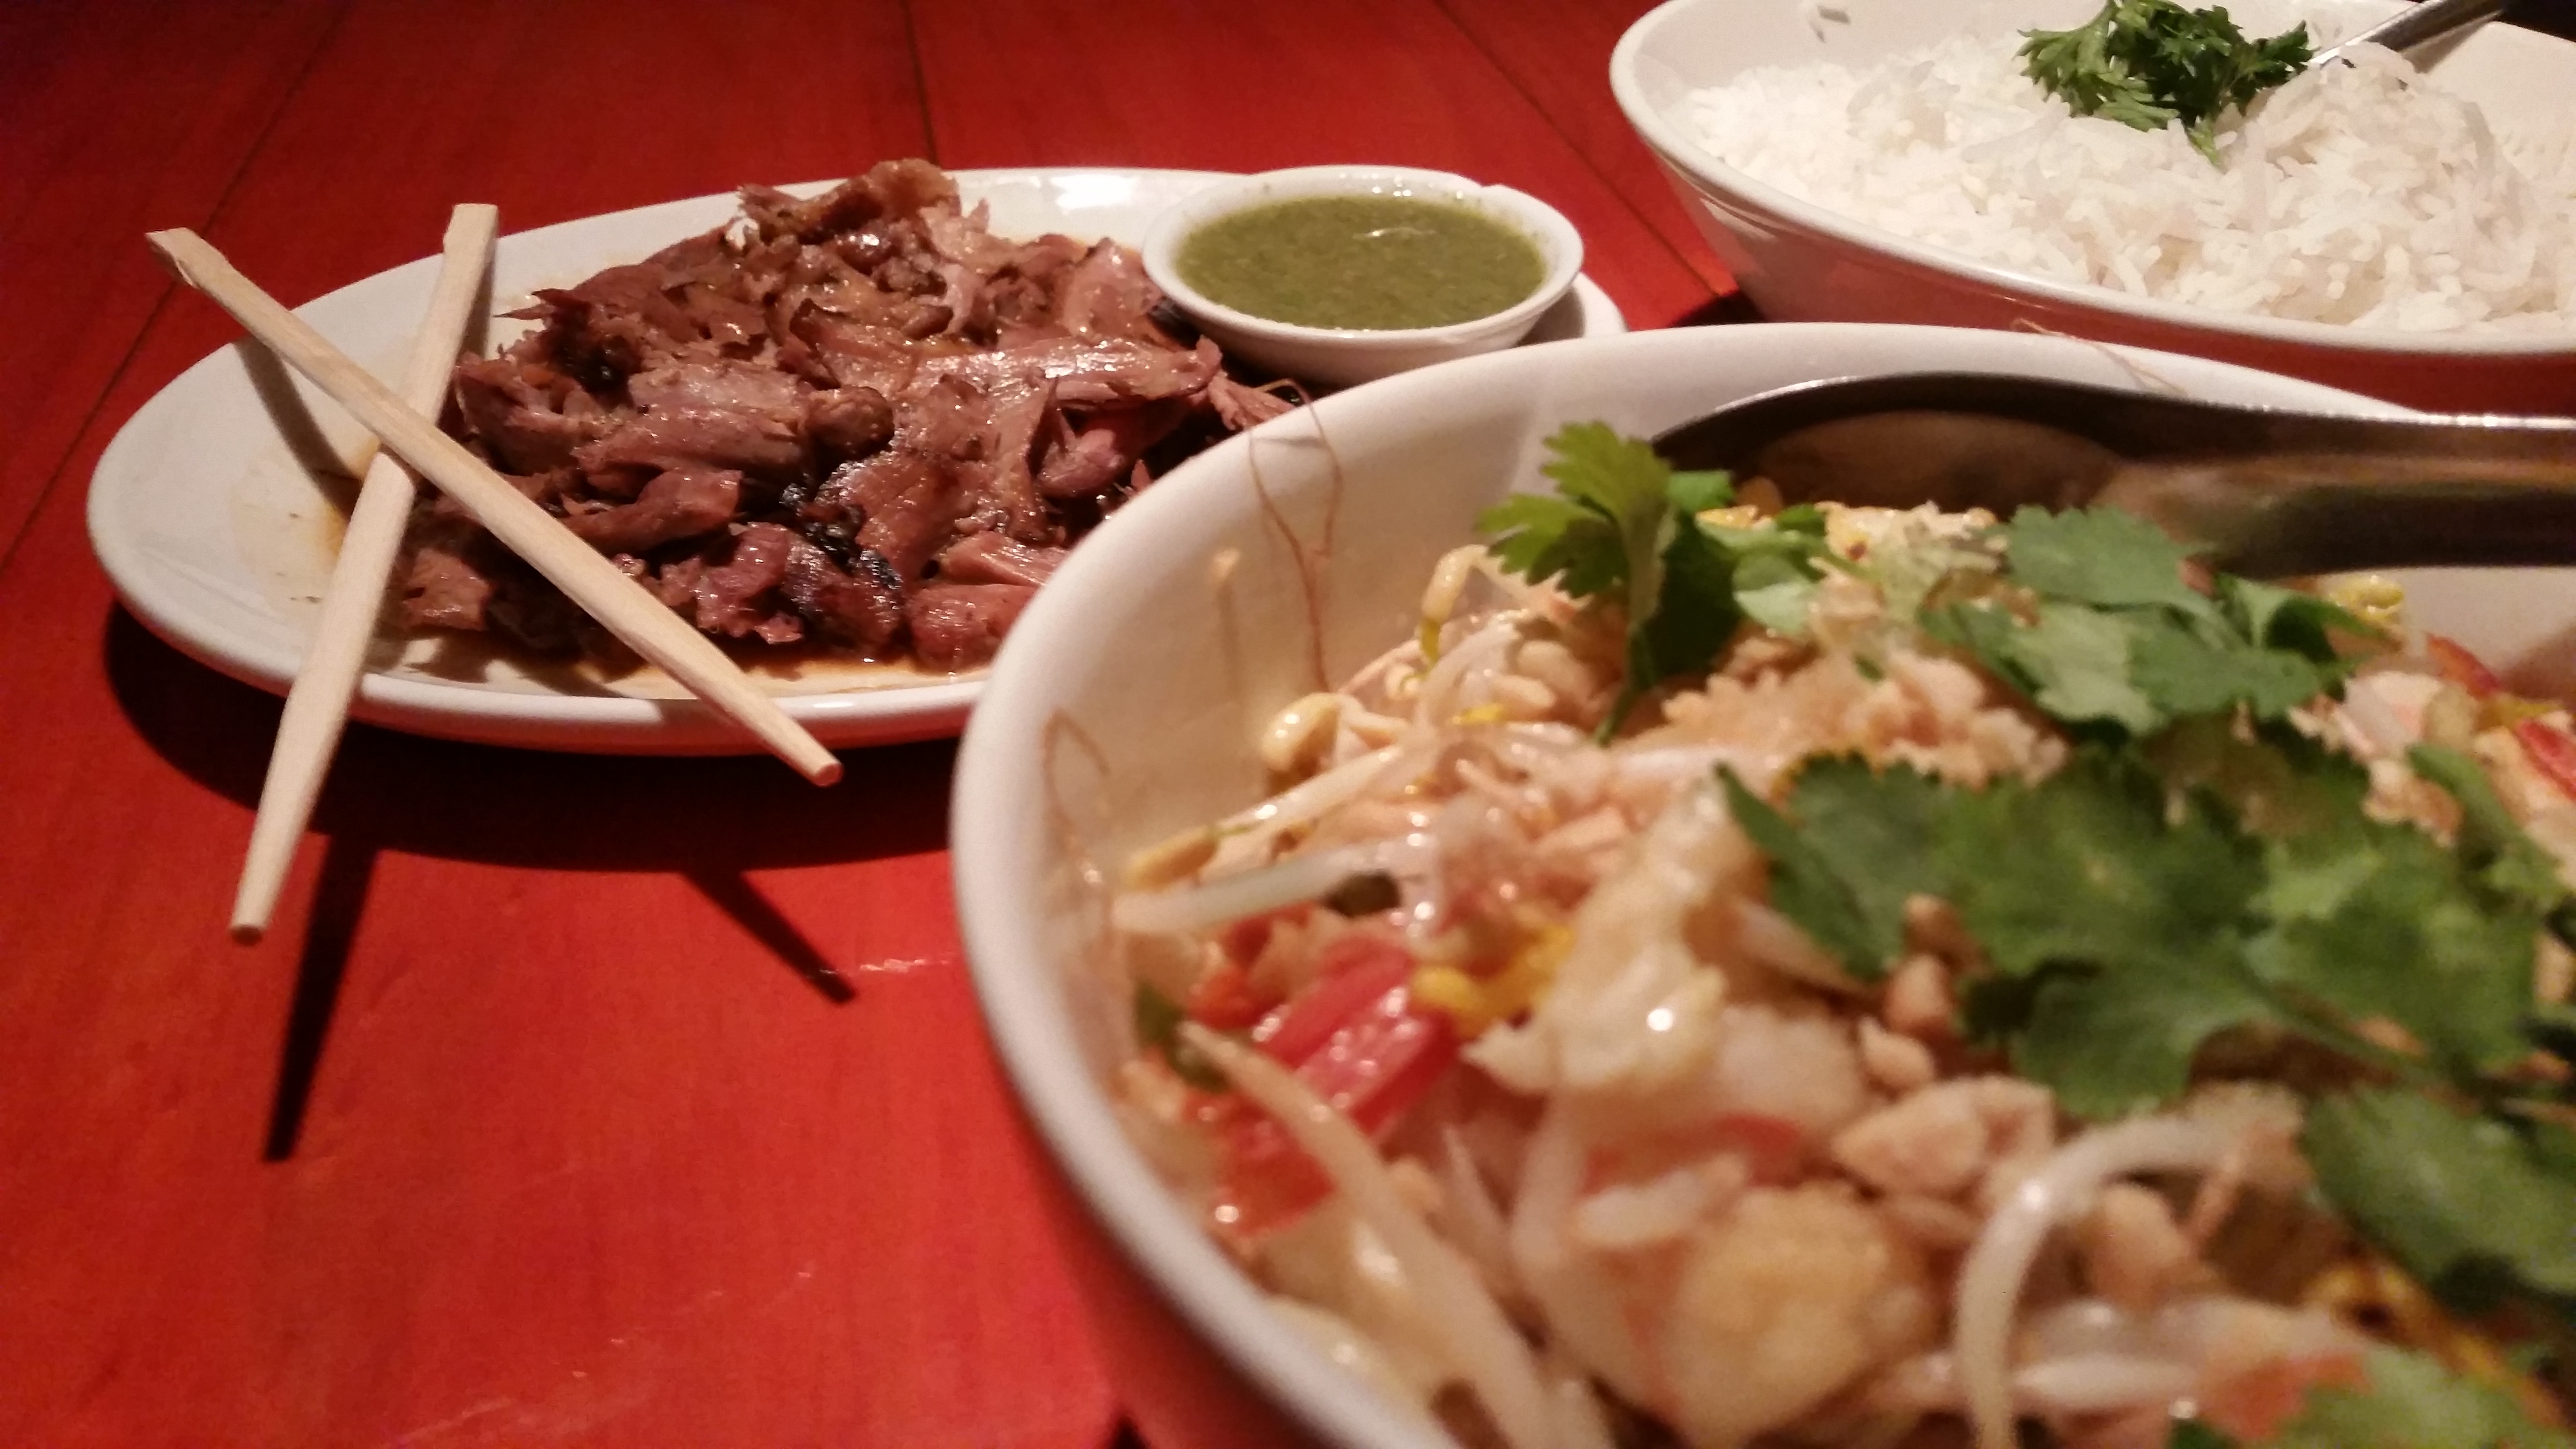 The prawn fried noodle dish is at the front and, in the back, the roast duck with green sauce